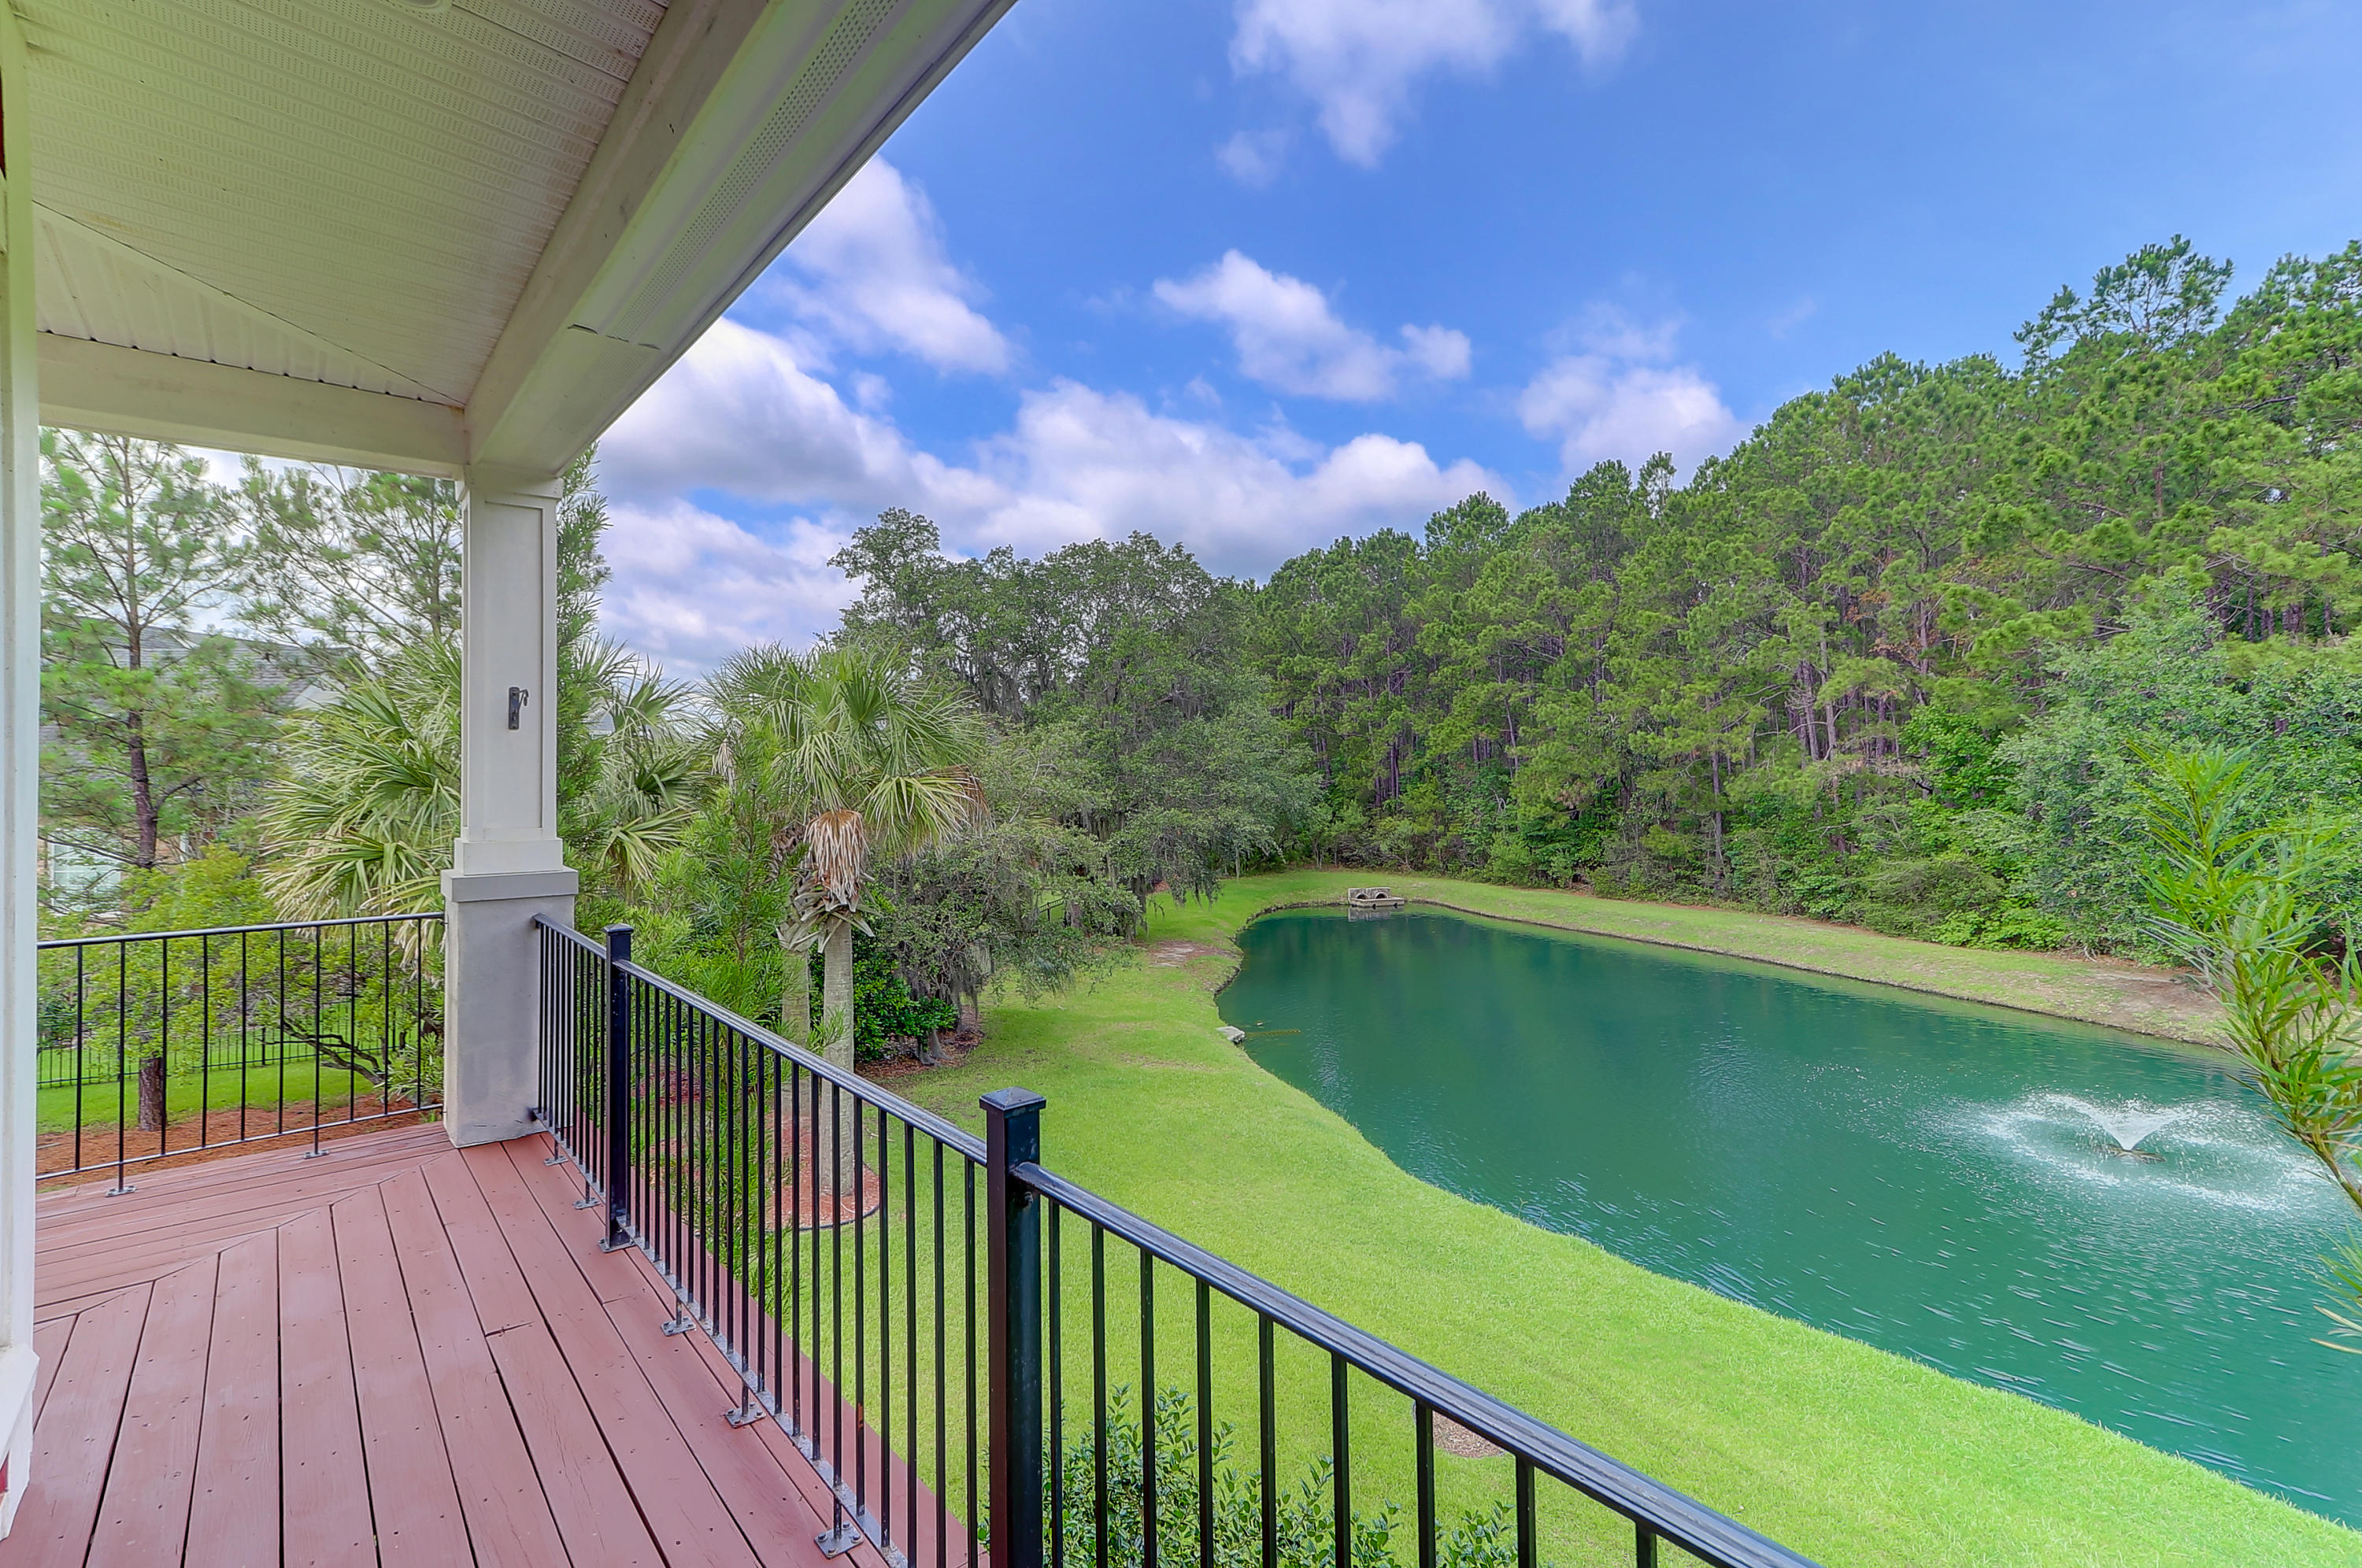 Beresford Creek Landing Homes For Sale - 1101 Beresford Run, Charleston, SC - 0